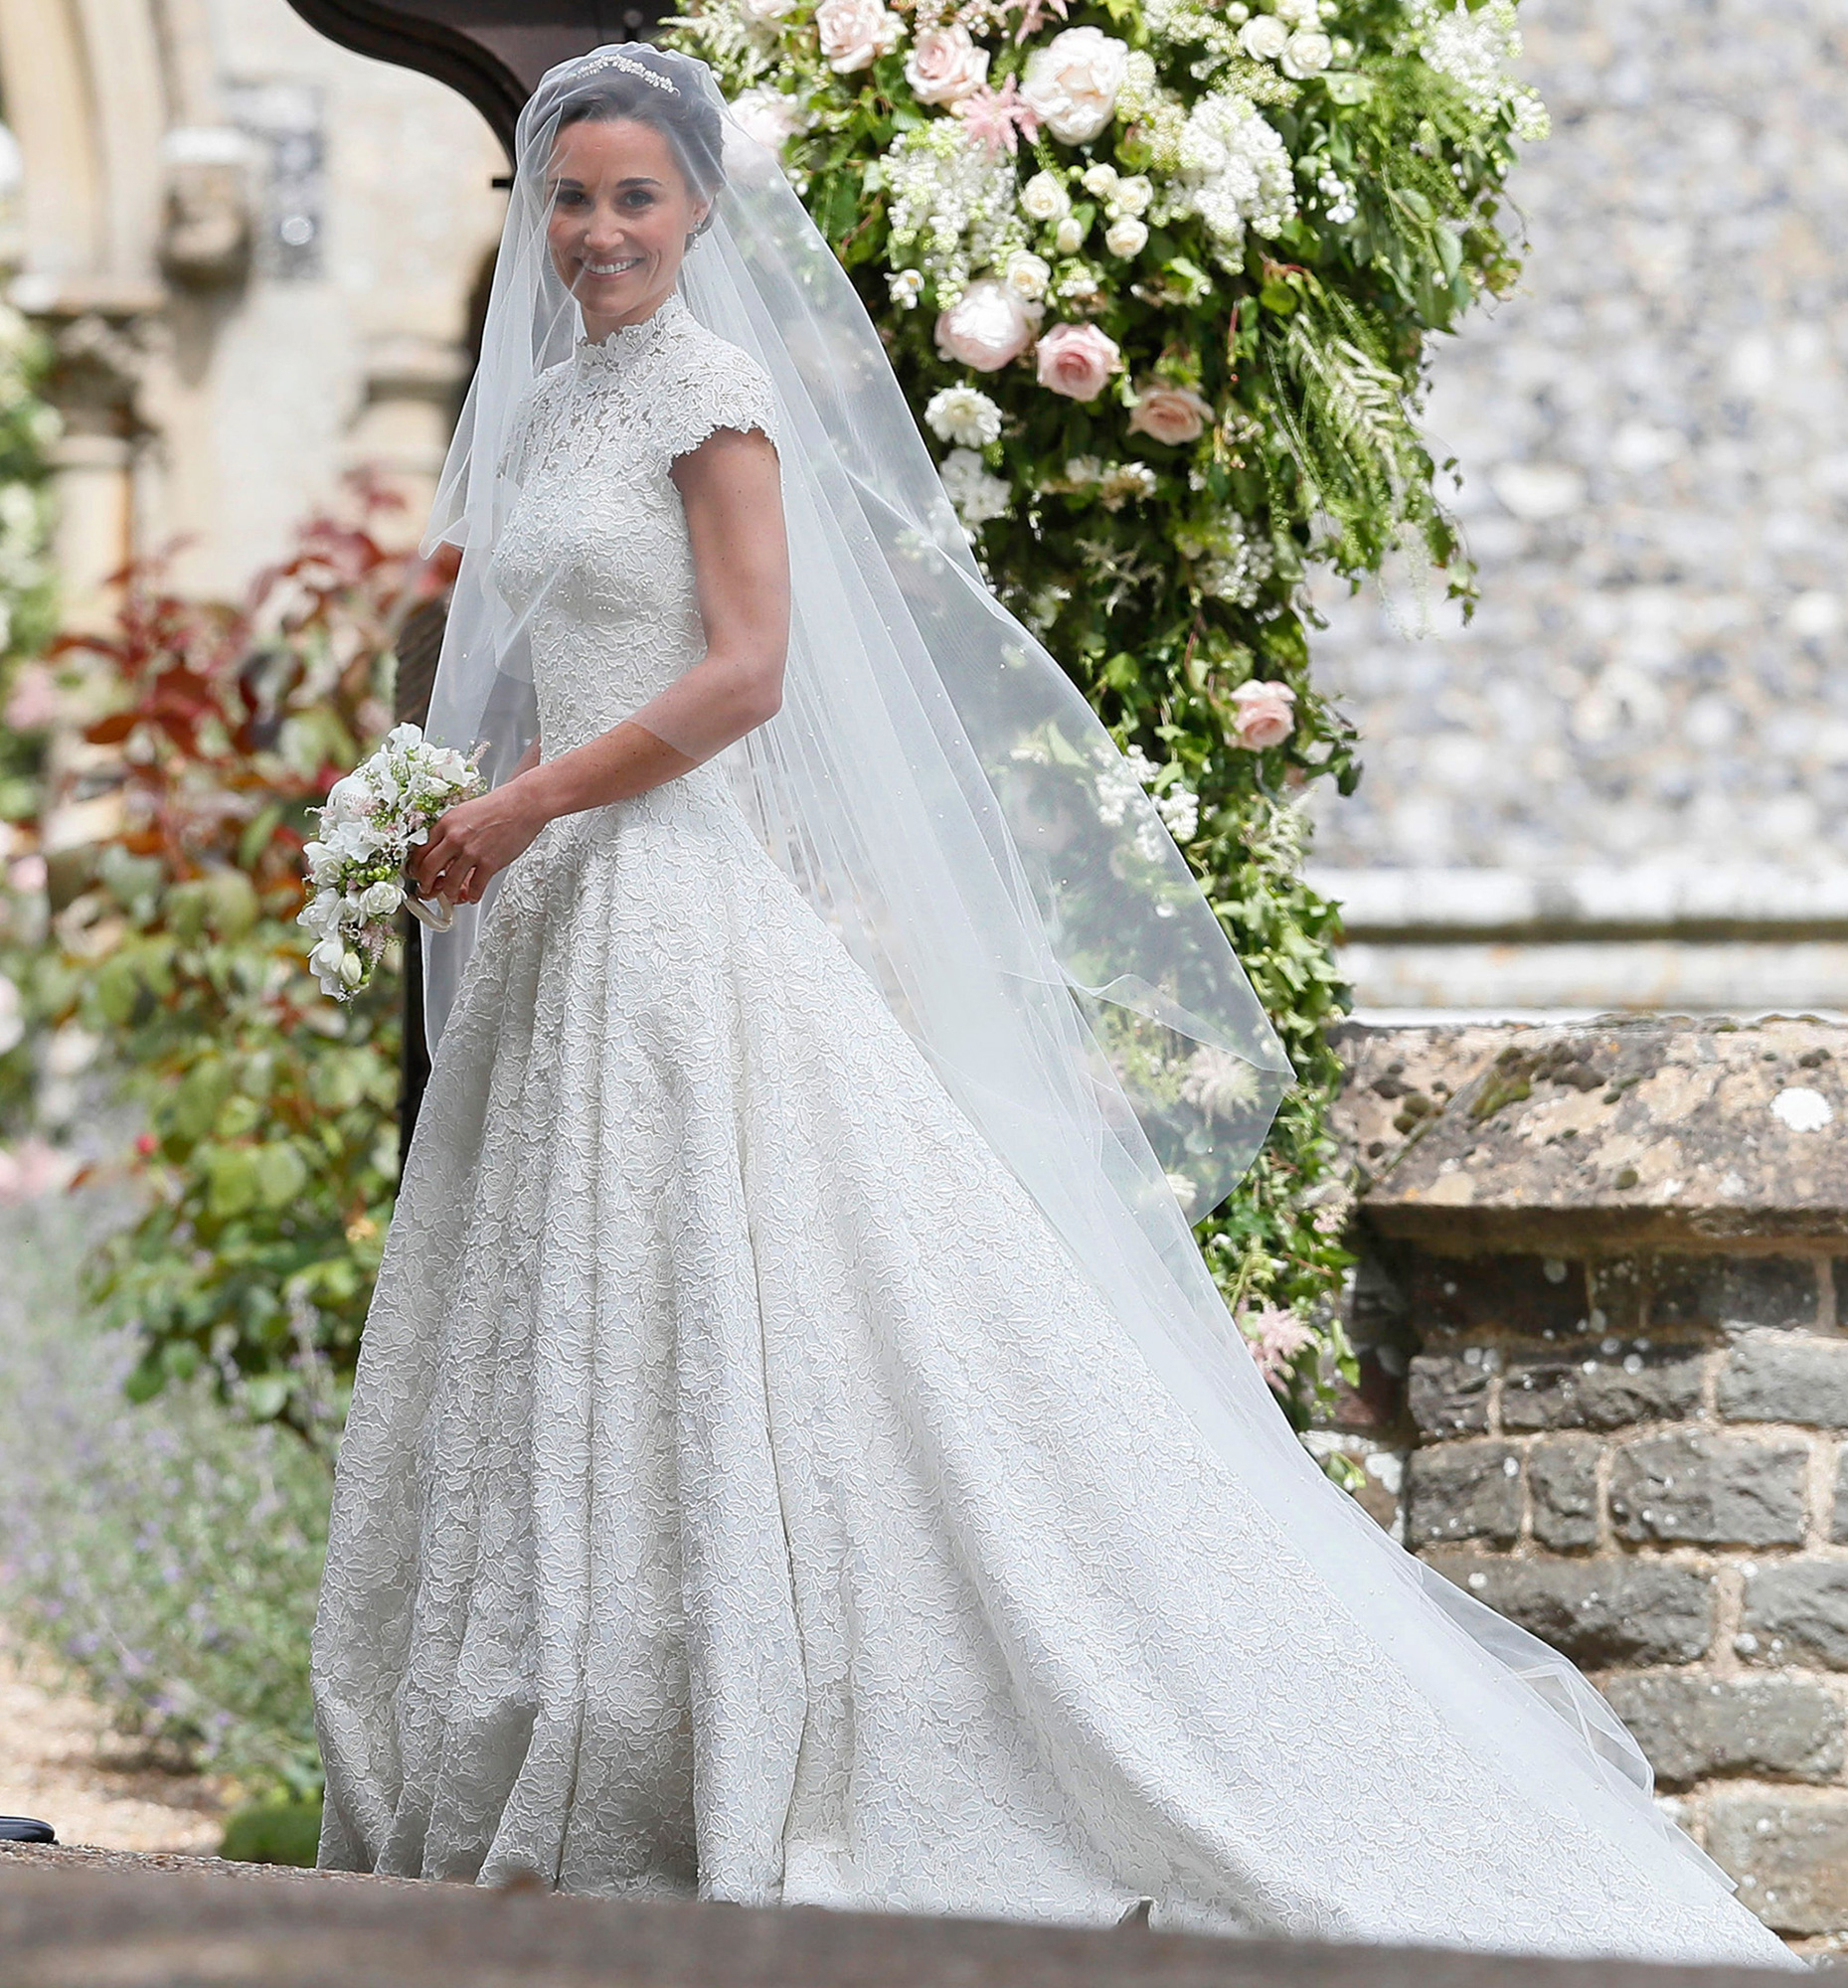 All the details on pippa middletons wedding dress pippa middleton at st marks church in englefield berkshire on may 20 2017 pa imagesinstarimages most amazing royal wedding dresses ever junglespirit Gallery